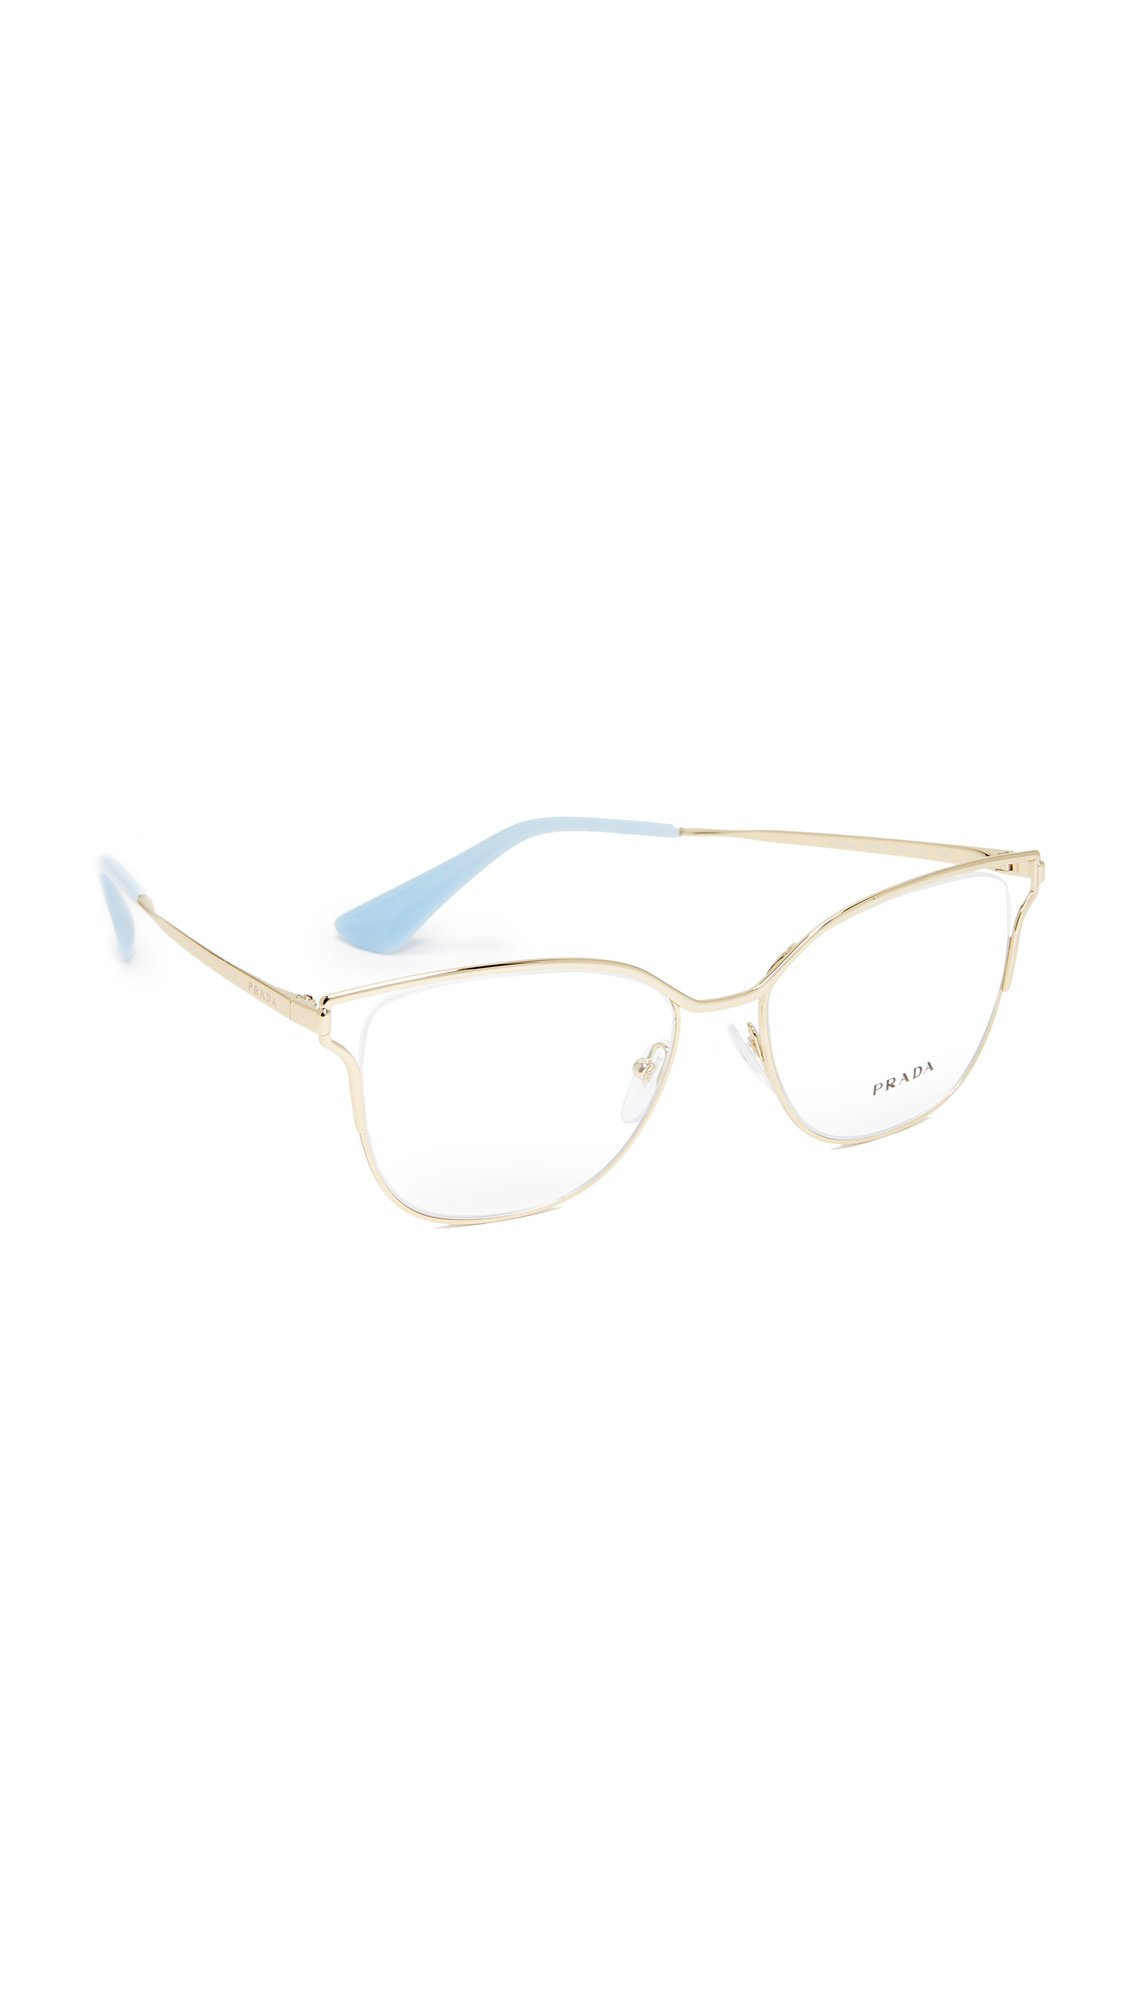 Prada Women's Cinema Glasses, Pale Gold/Clear, One Size